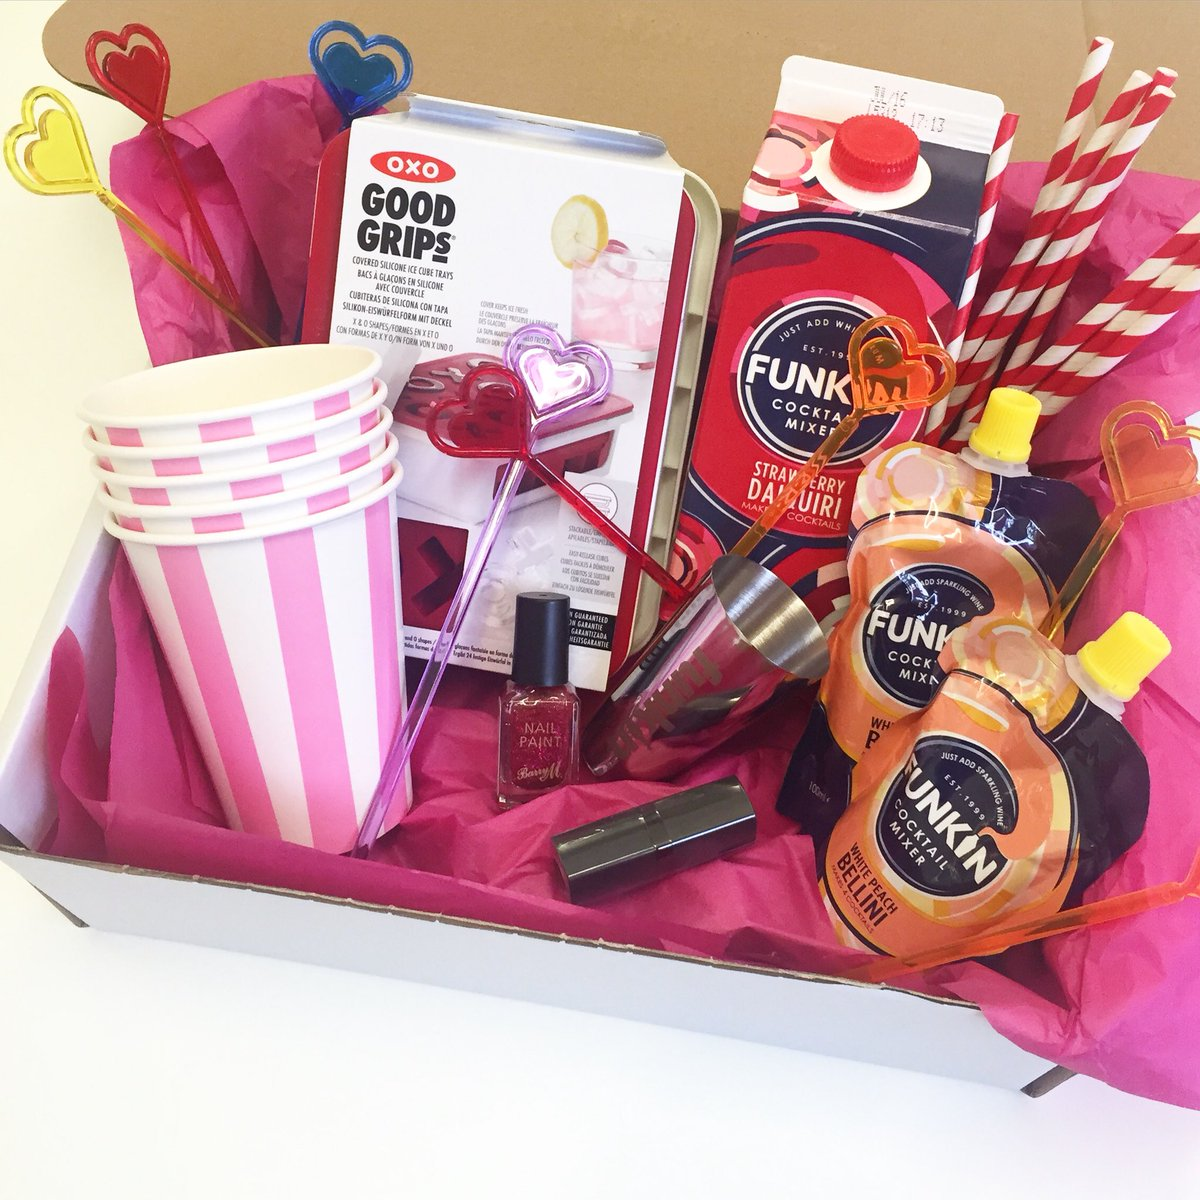 Valentine's freebie Friday! #RT and #follow to win this cocktails bundle! #galentines #FreebieFriday https://t.co/MIAE59mWro